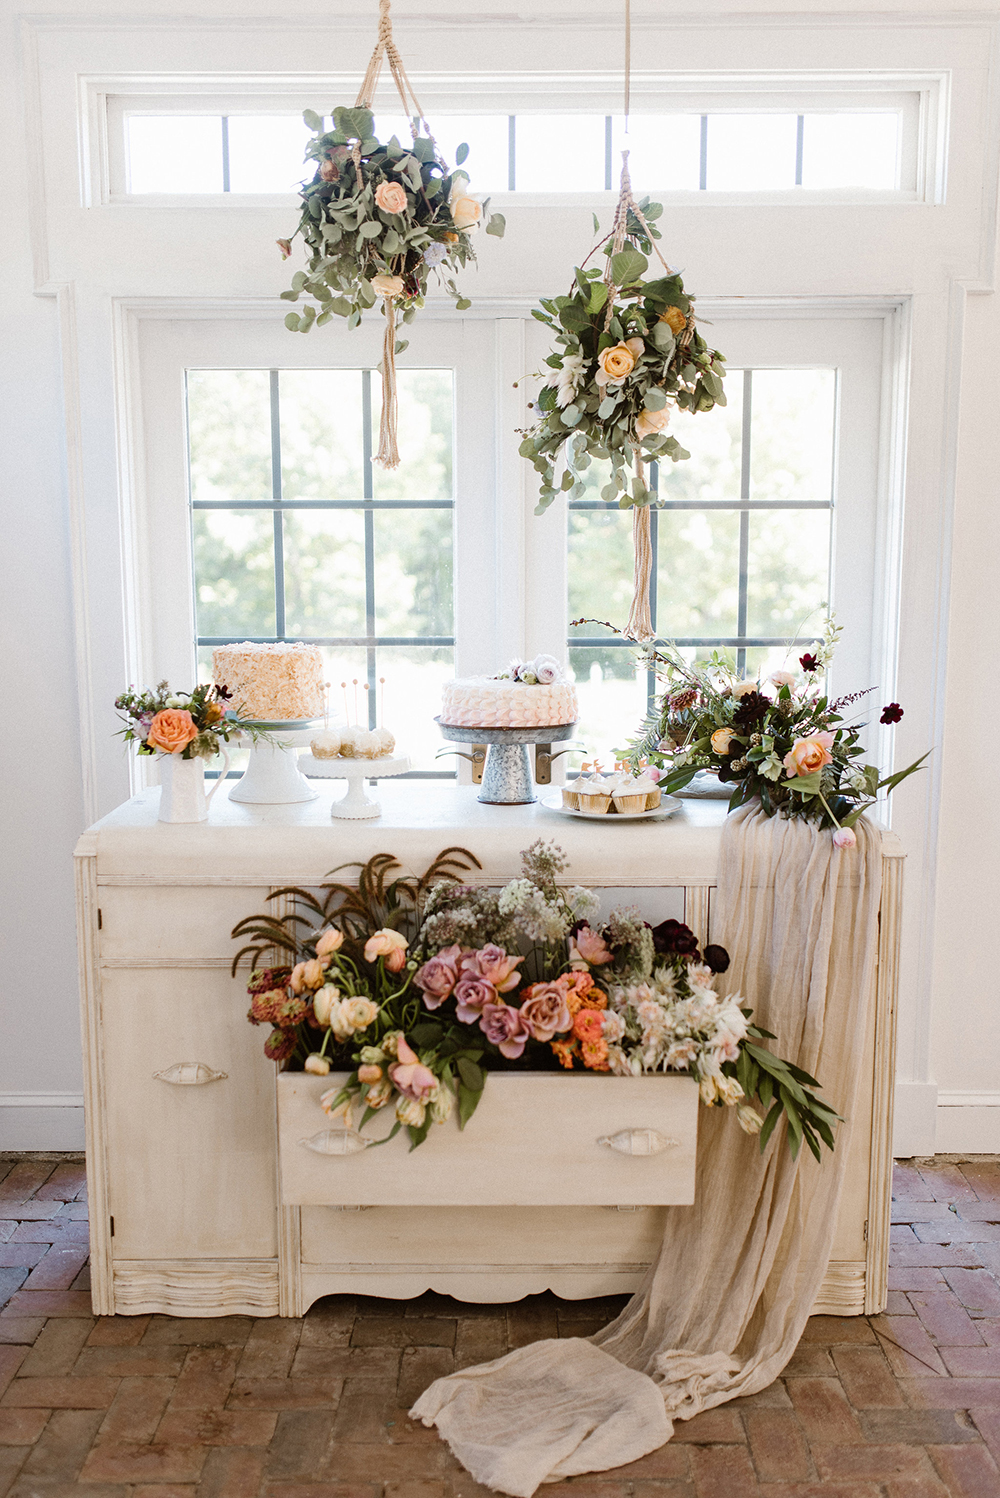 dessert table with flowers - photo by Lindsay Hackney Photography http://ruffledblog.com/the-ultimate-garden-lover-bridal-inspiration